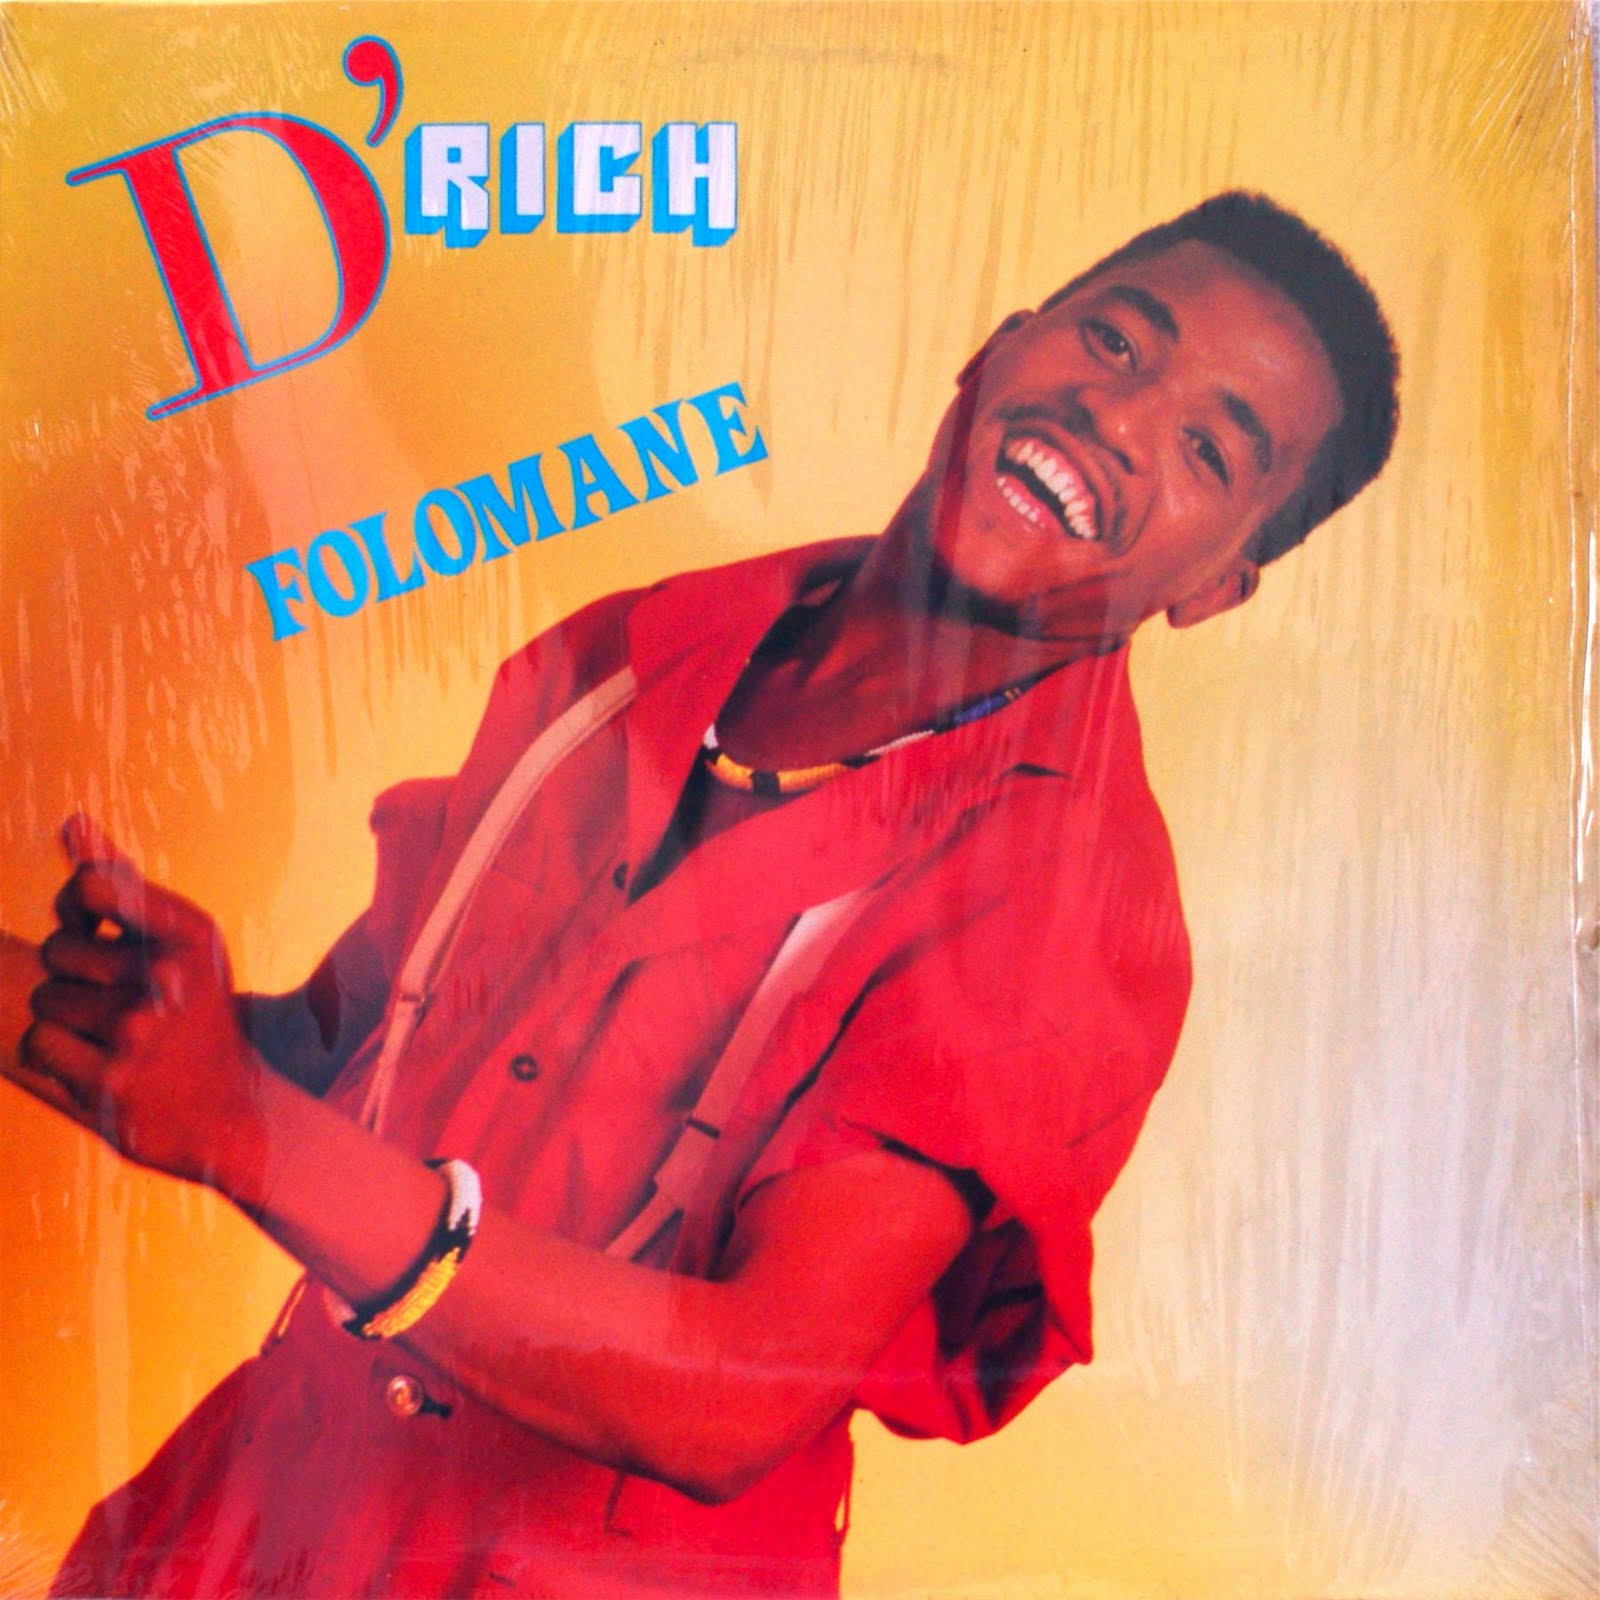 Afro-Synth: D'RICH - Folomane (1989)